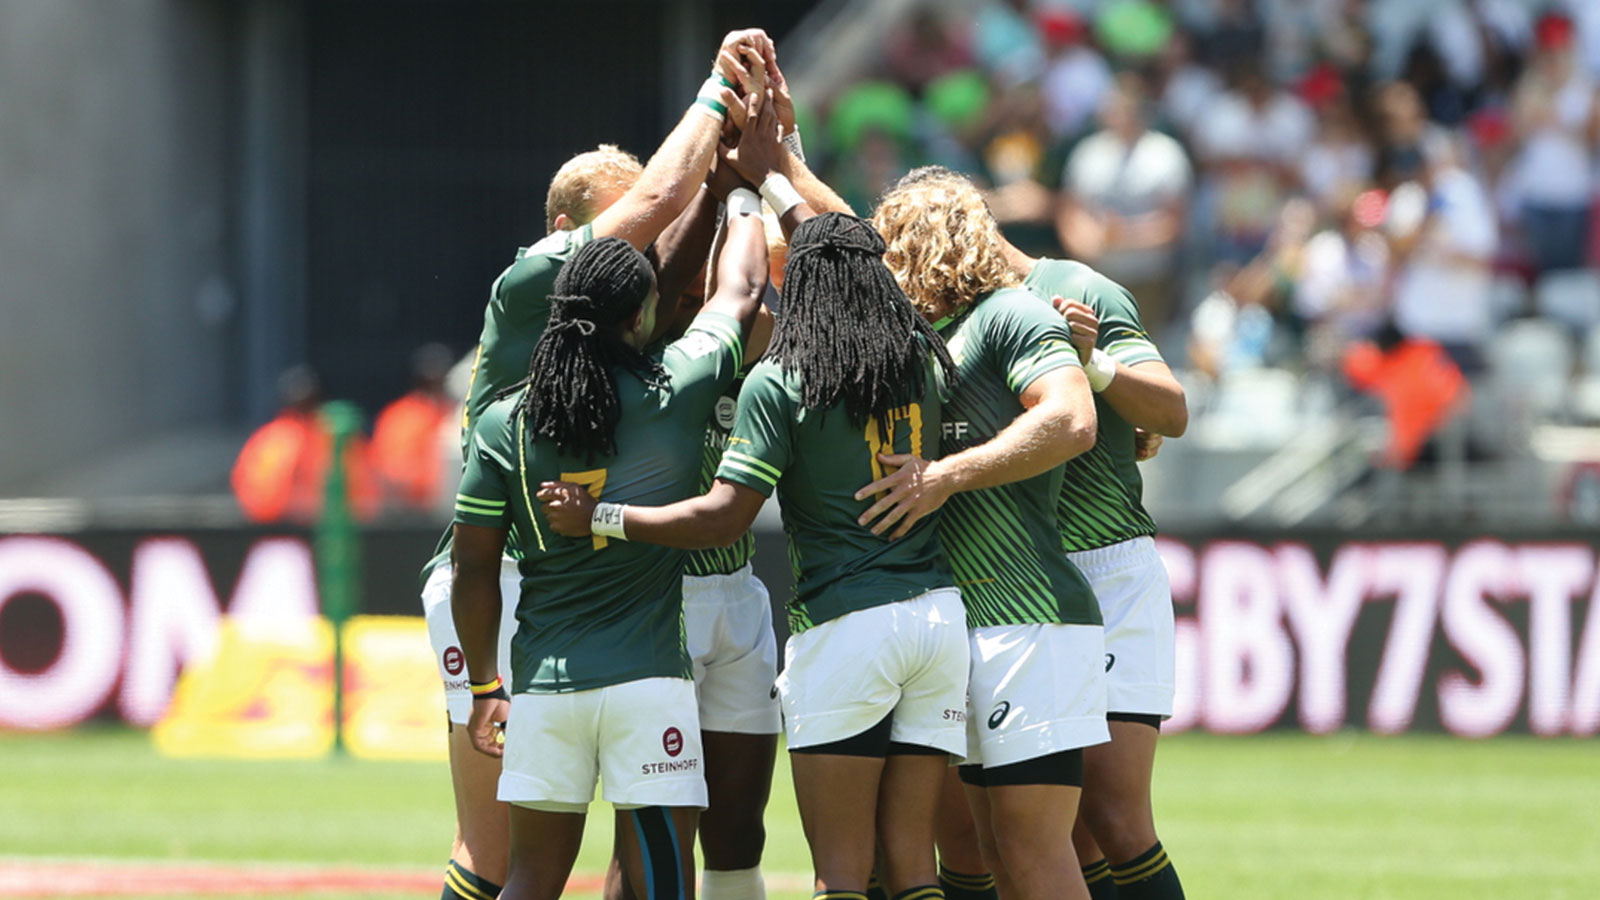 The South African Blitzboks pride themselves on a collective culture that has brought them so close to a second World Rugby Sevens title. With just two tournaments to go, maintaining focus will be crucial.